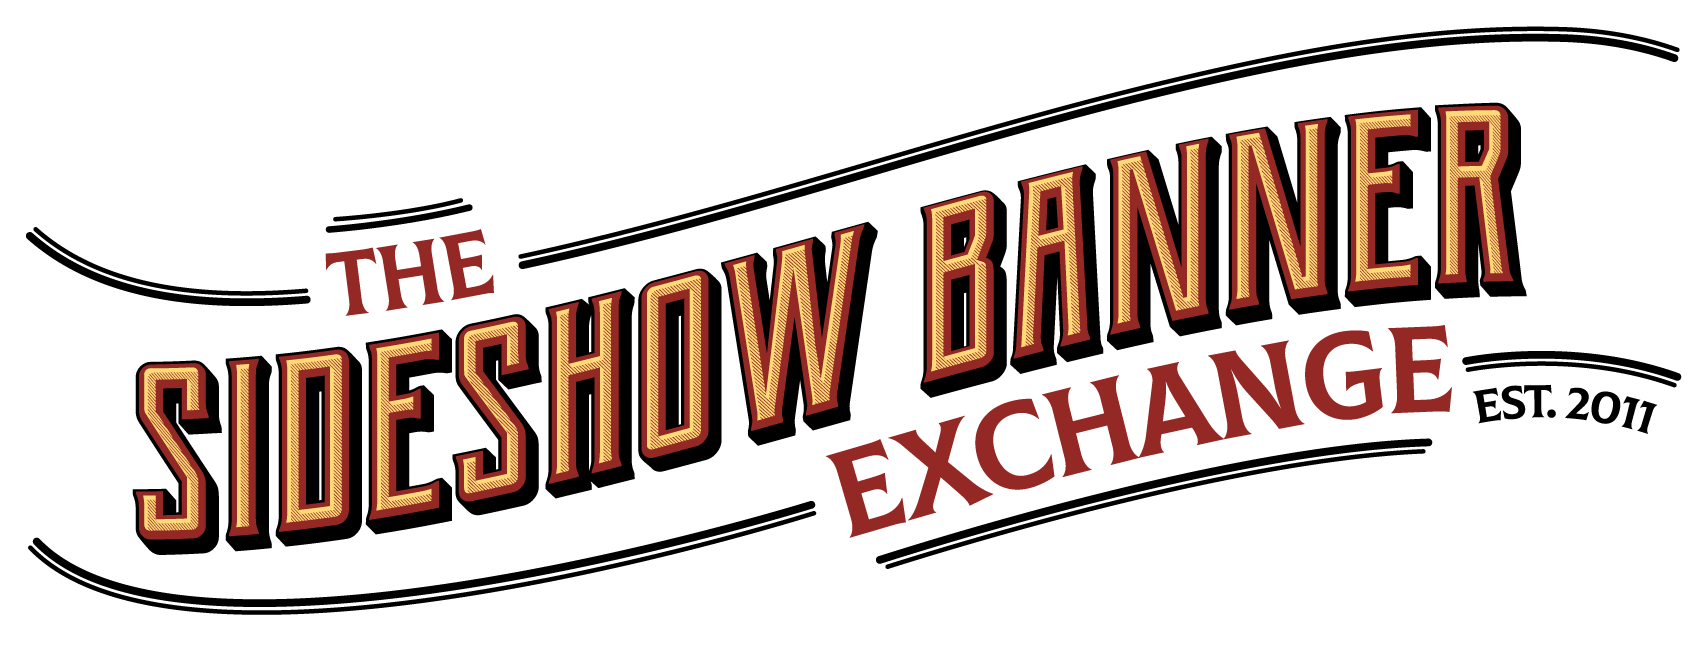 Sideshow Banner Exchange